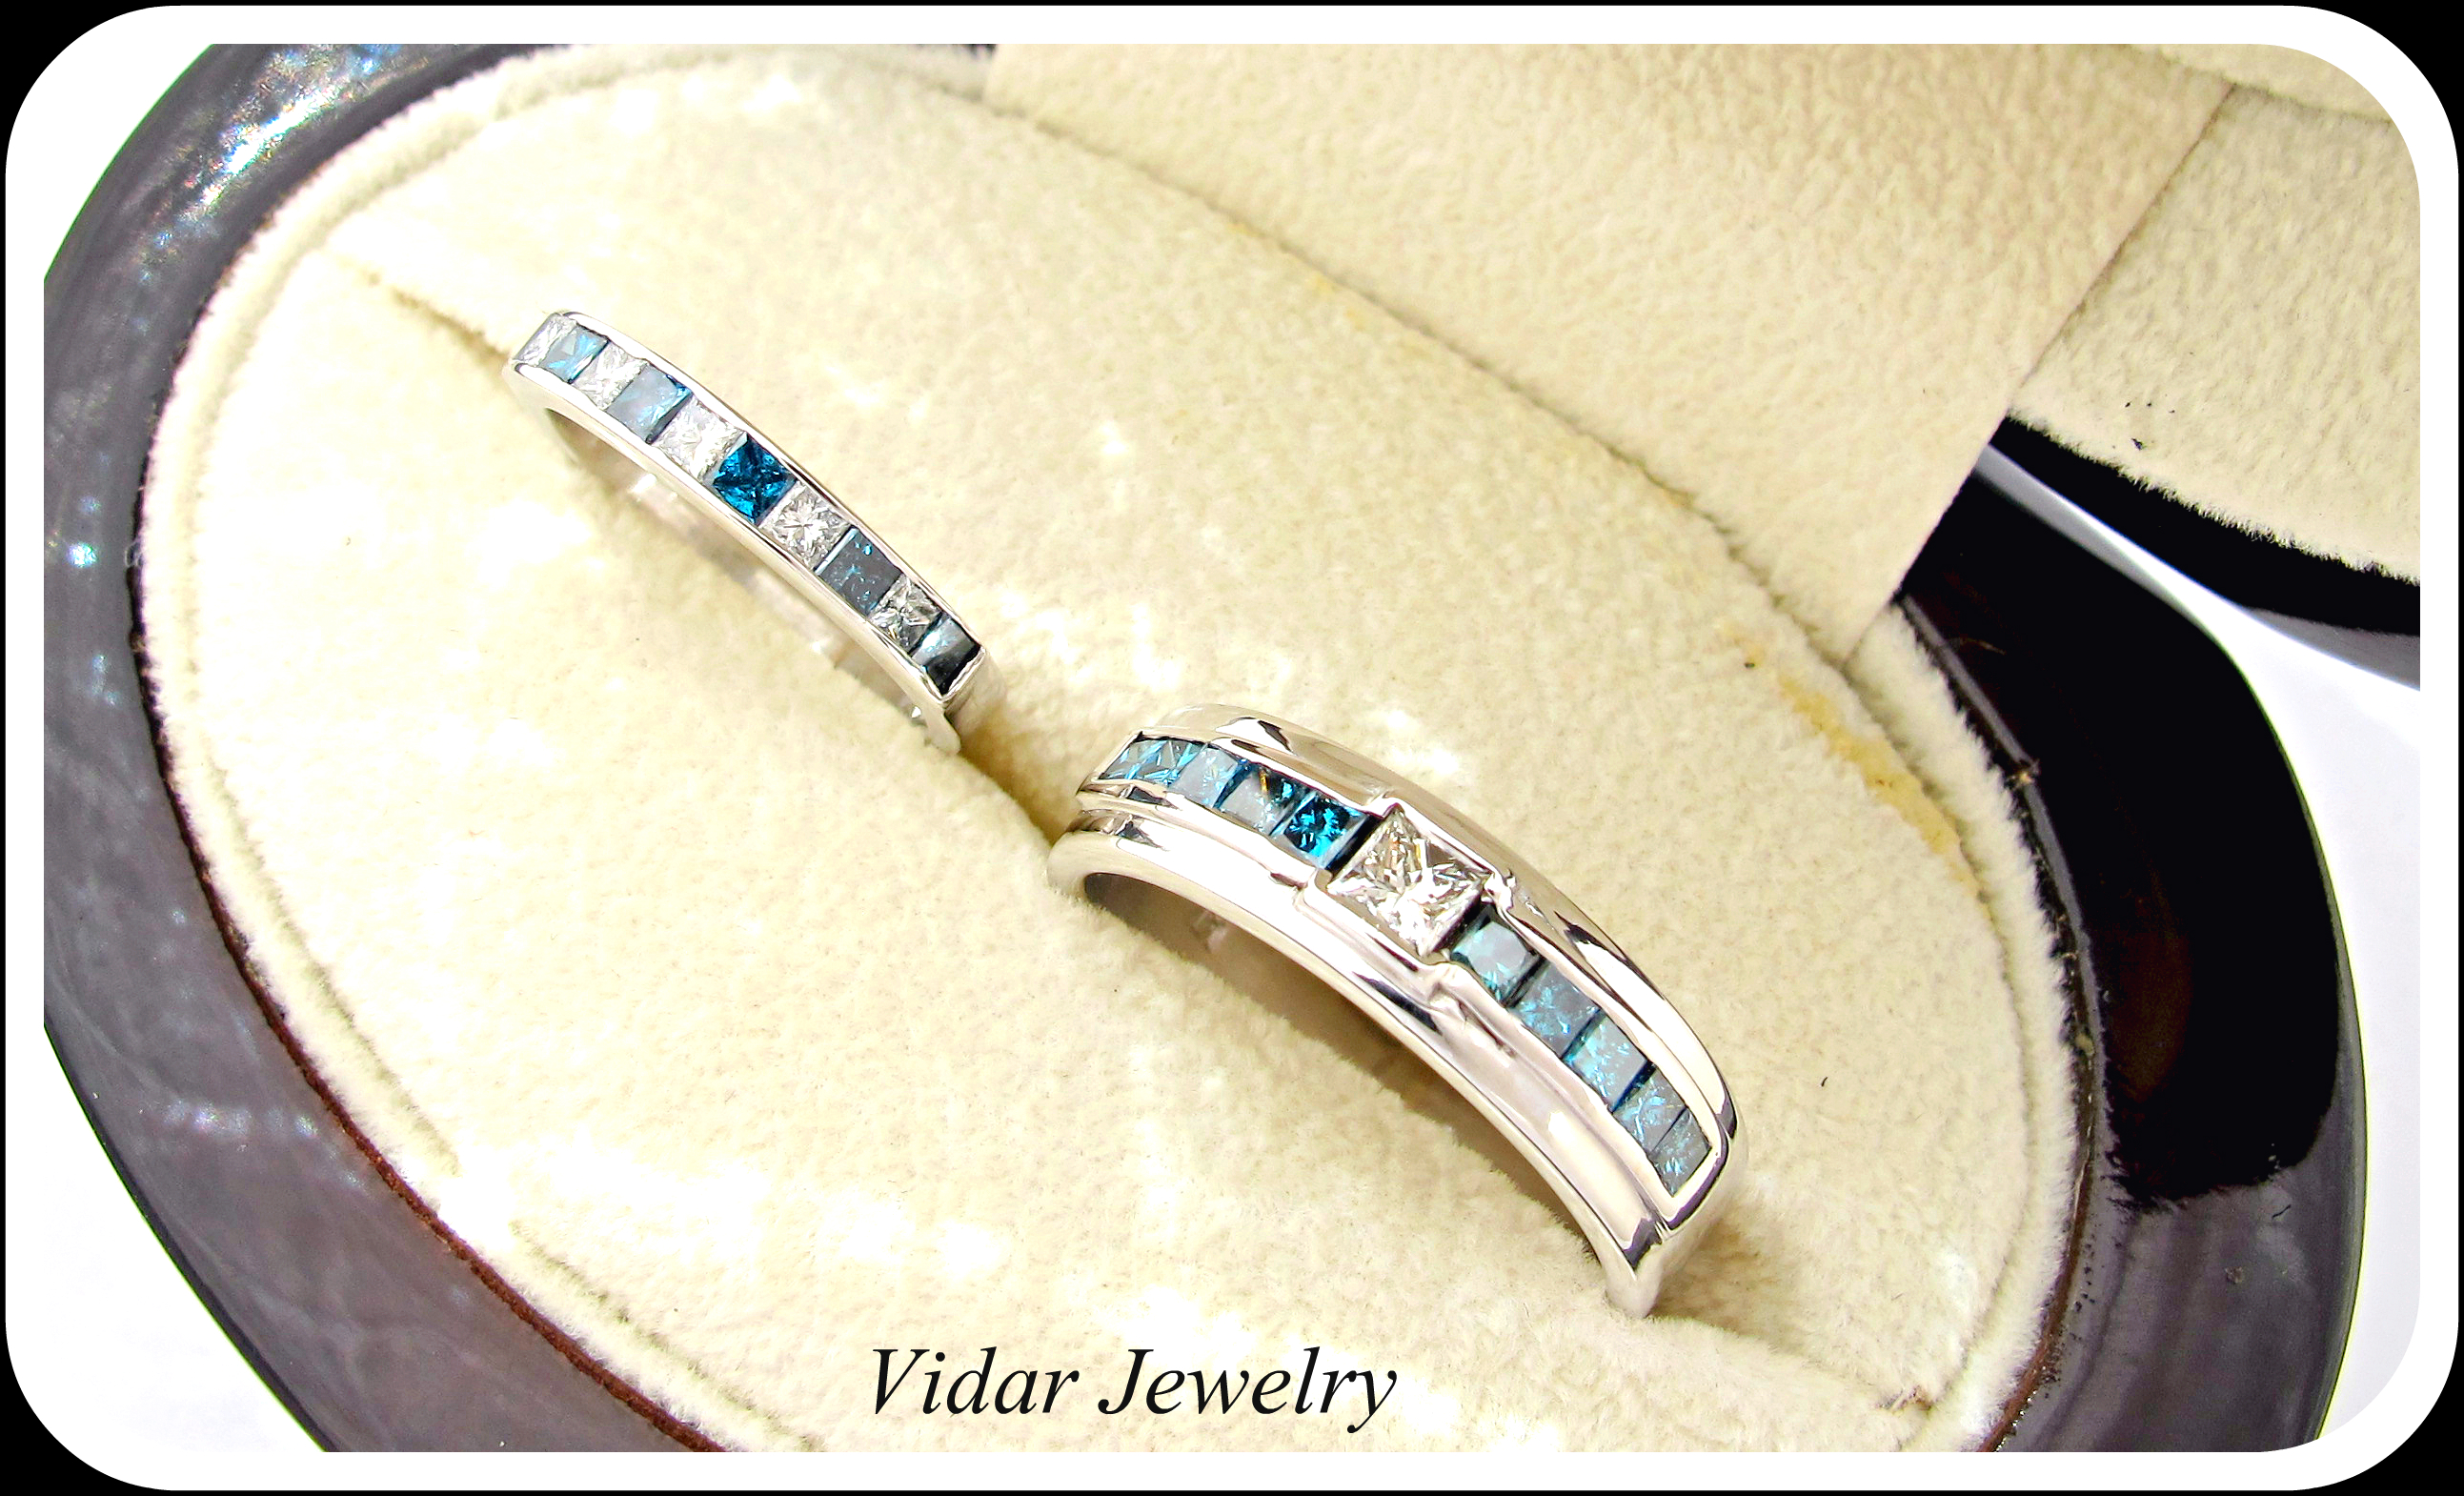 vidarjewelry matching wedding bands His And Her Princess Cut White And Blue Diamond Matching Wedding Bands